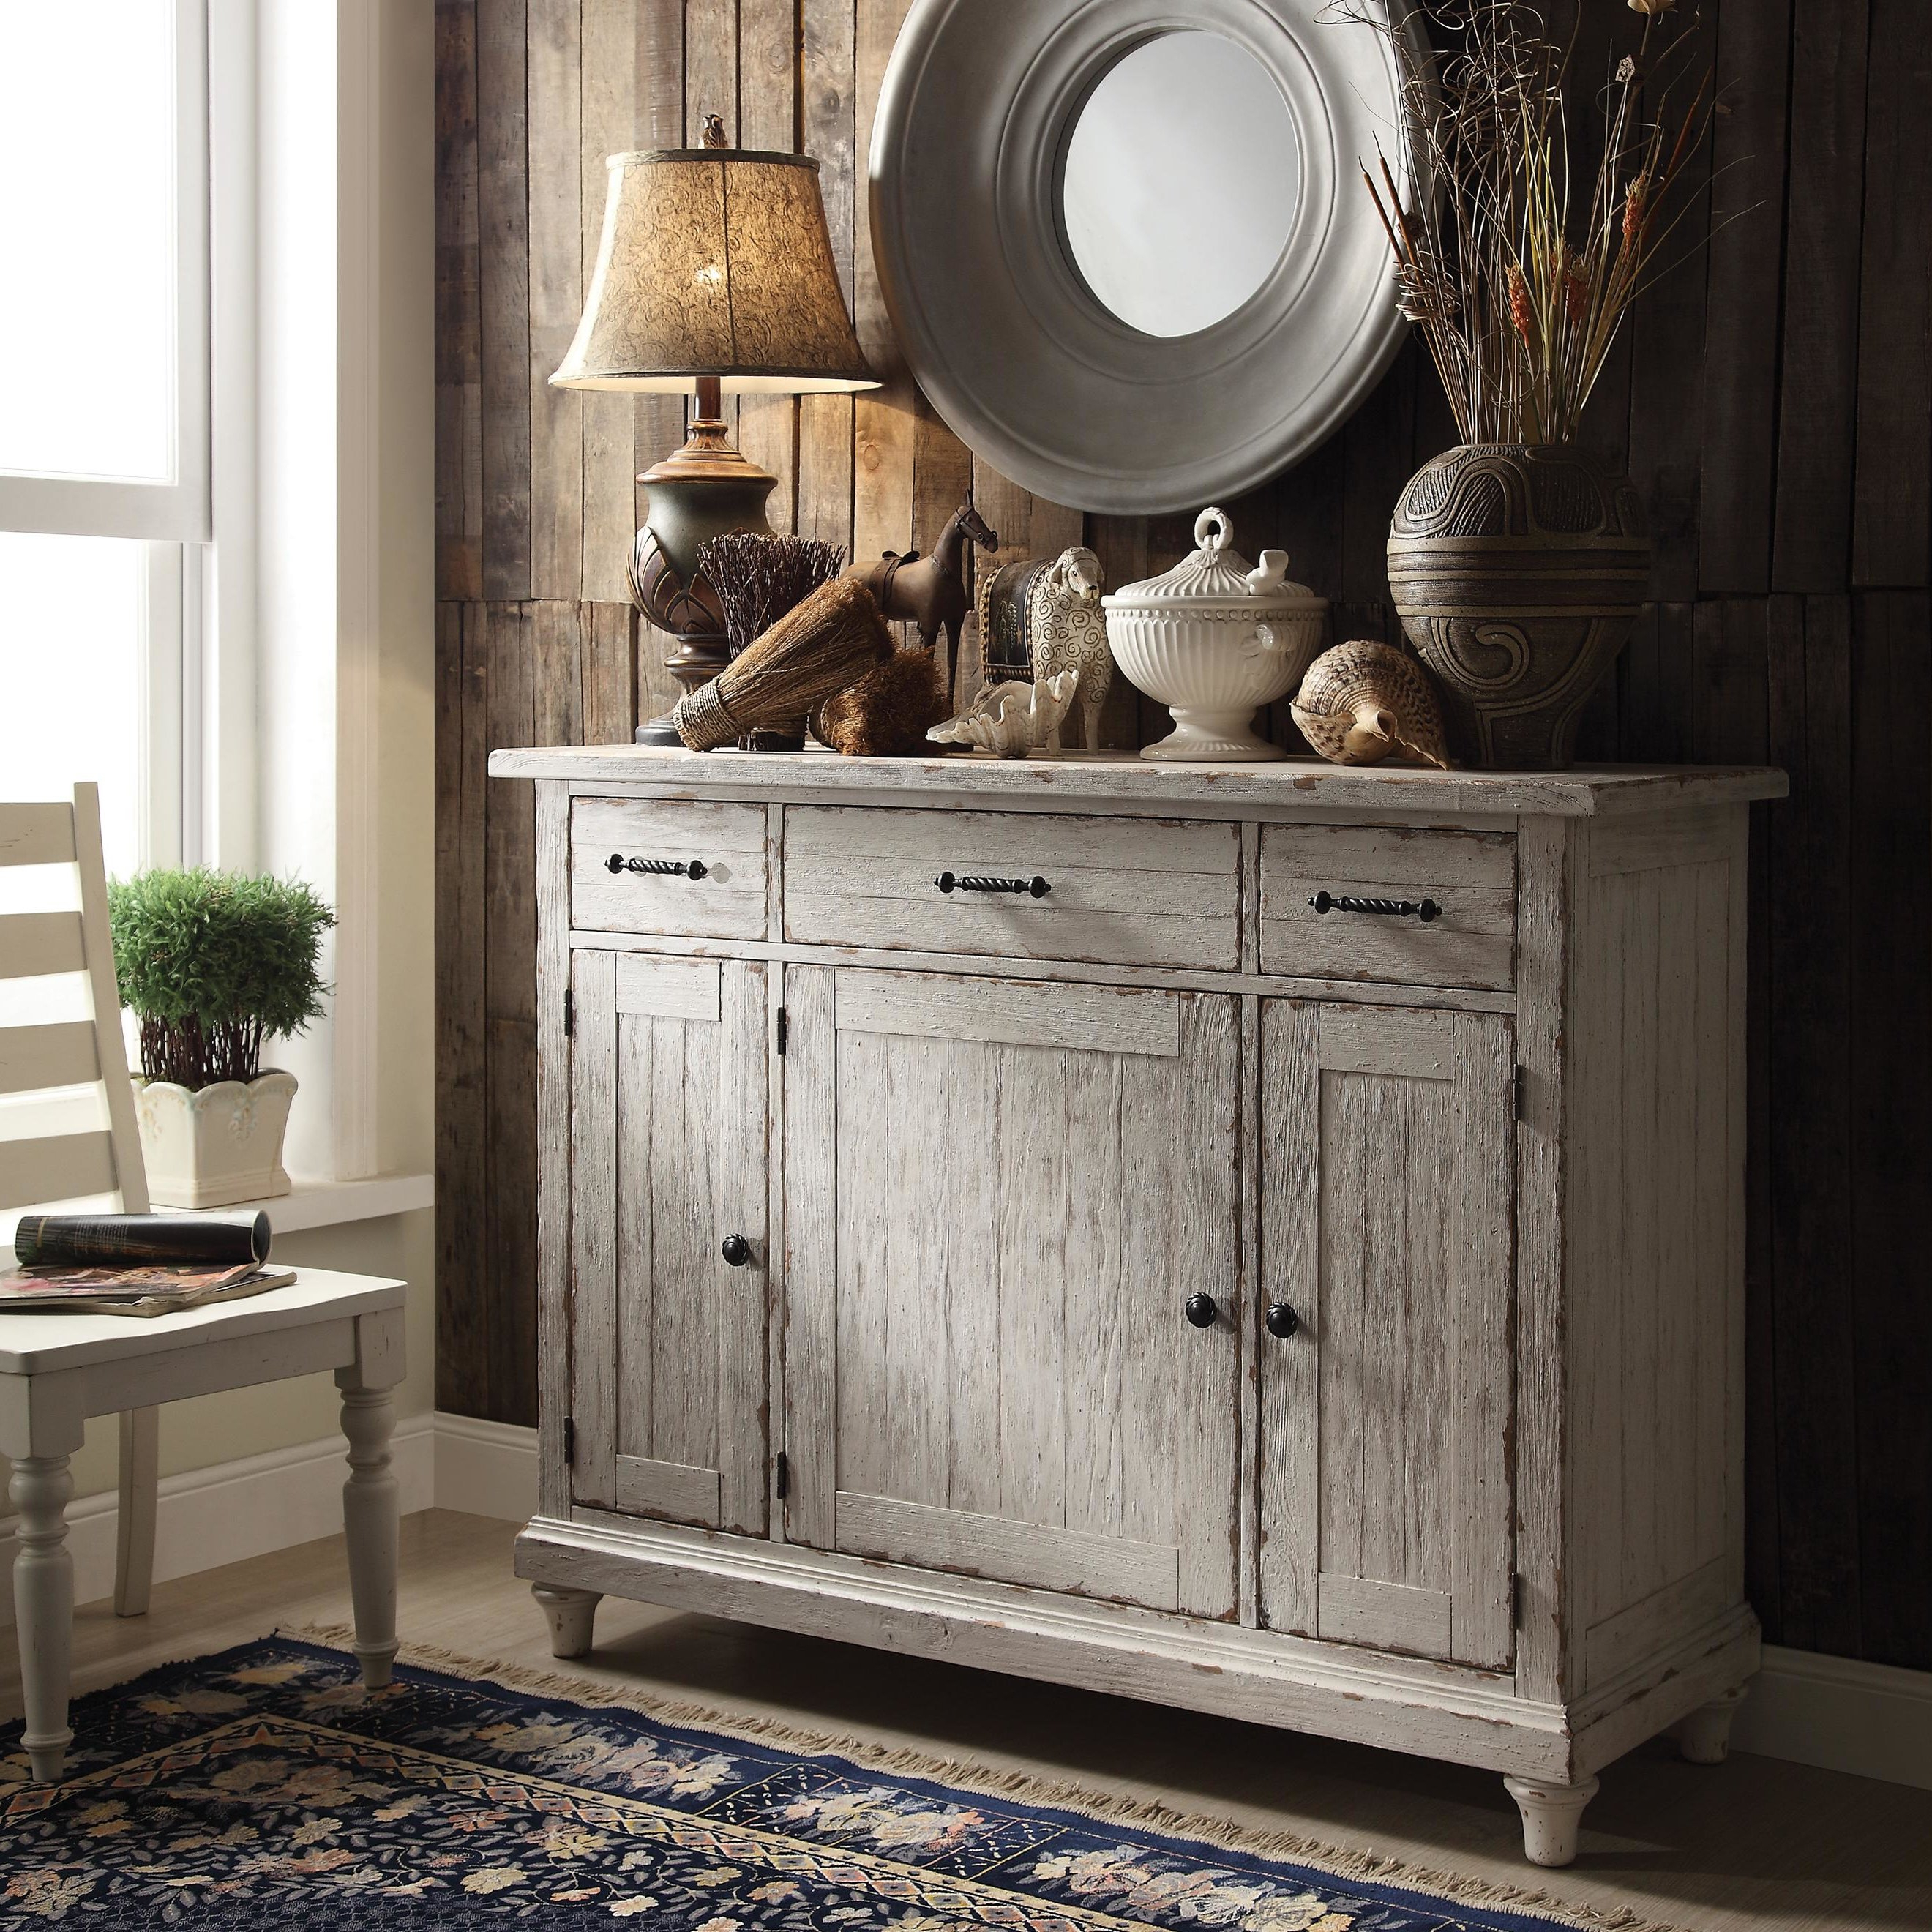 Farmhouse & Rustic Sideboards & Buffets | Birch Lane Intended For Payton Serving Sideboards (View 5 of 20)